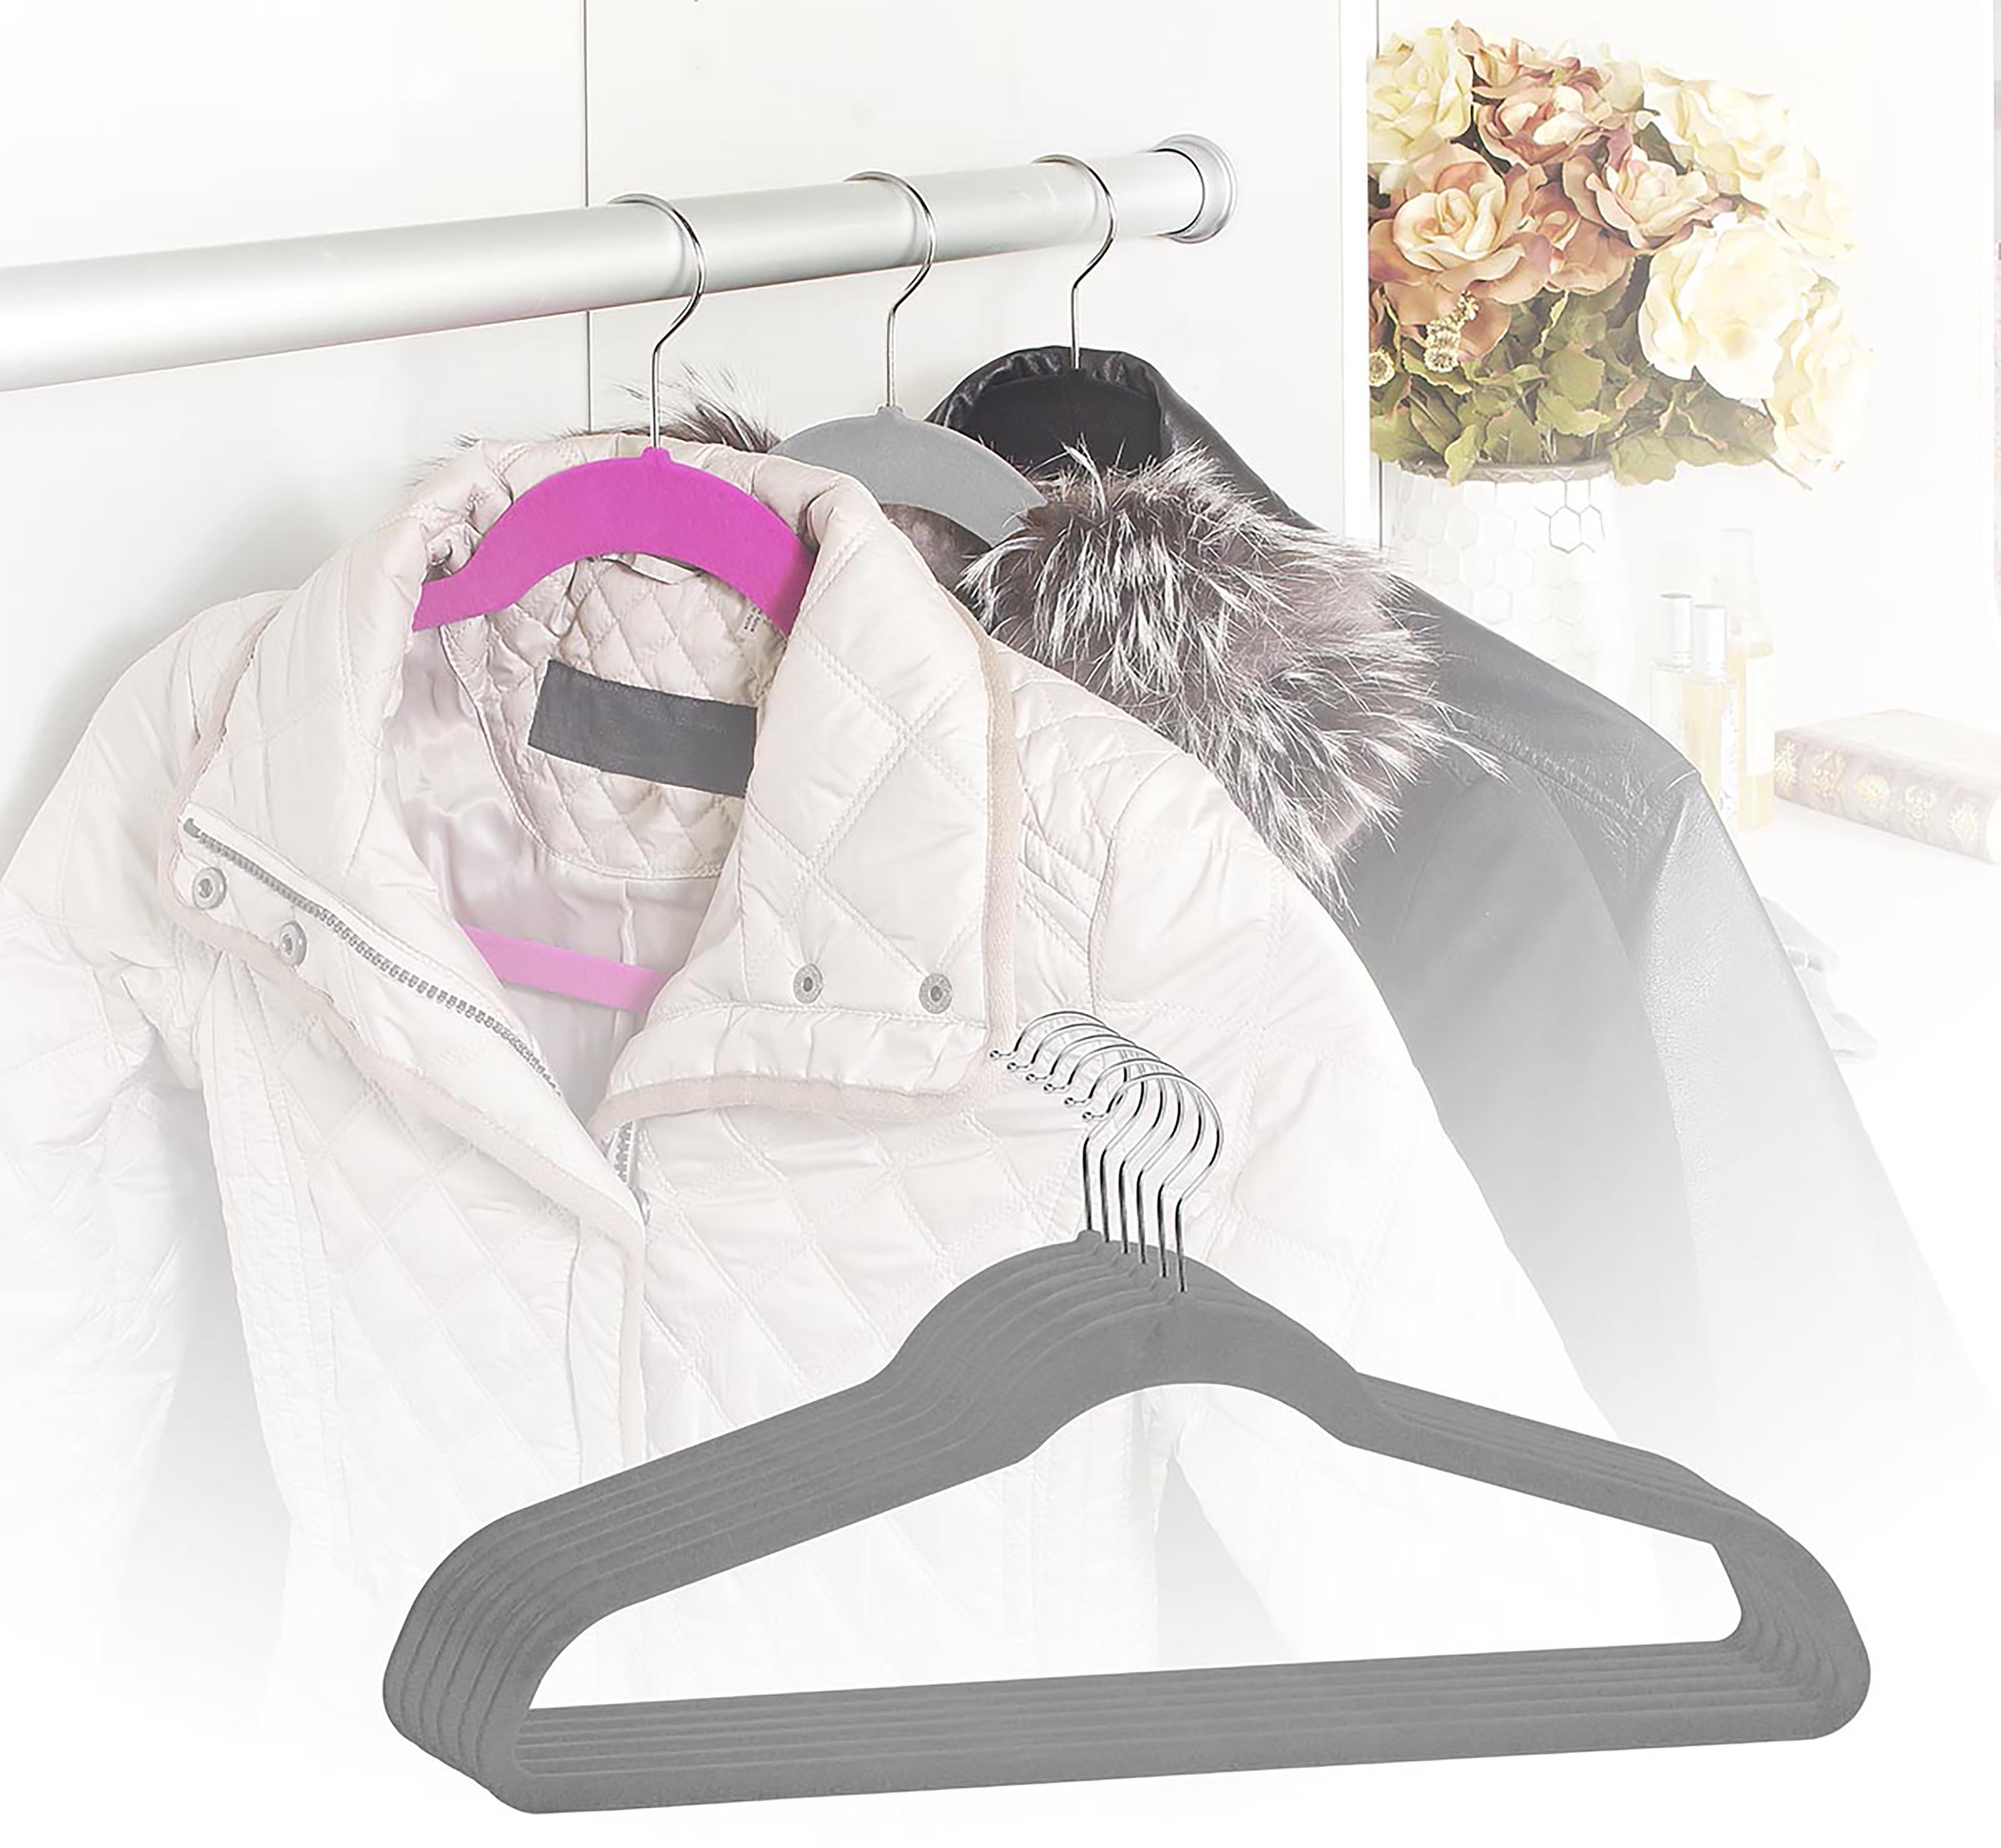 6 PACK Extra Wide Coat Hanger Suit Clothing Gray 10 Lbs Capacity Heavy Jacket 21